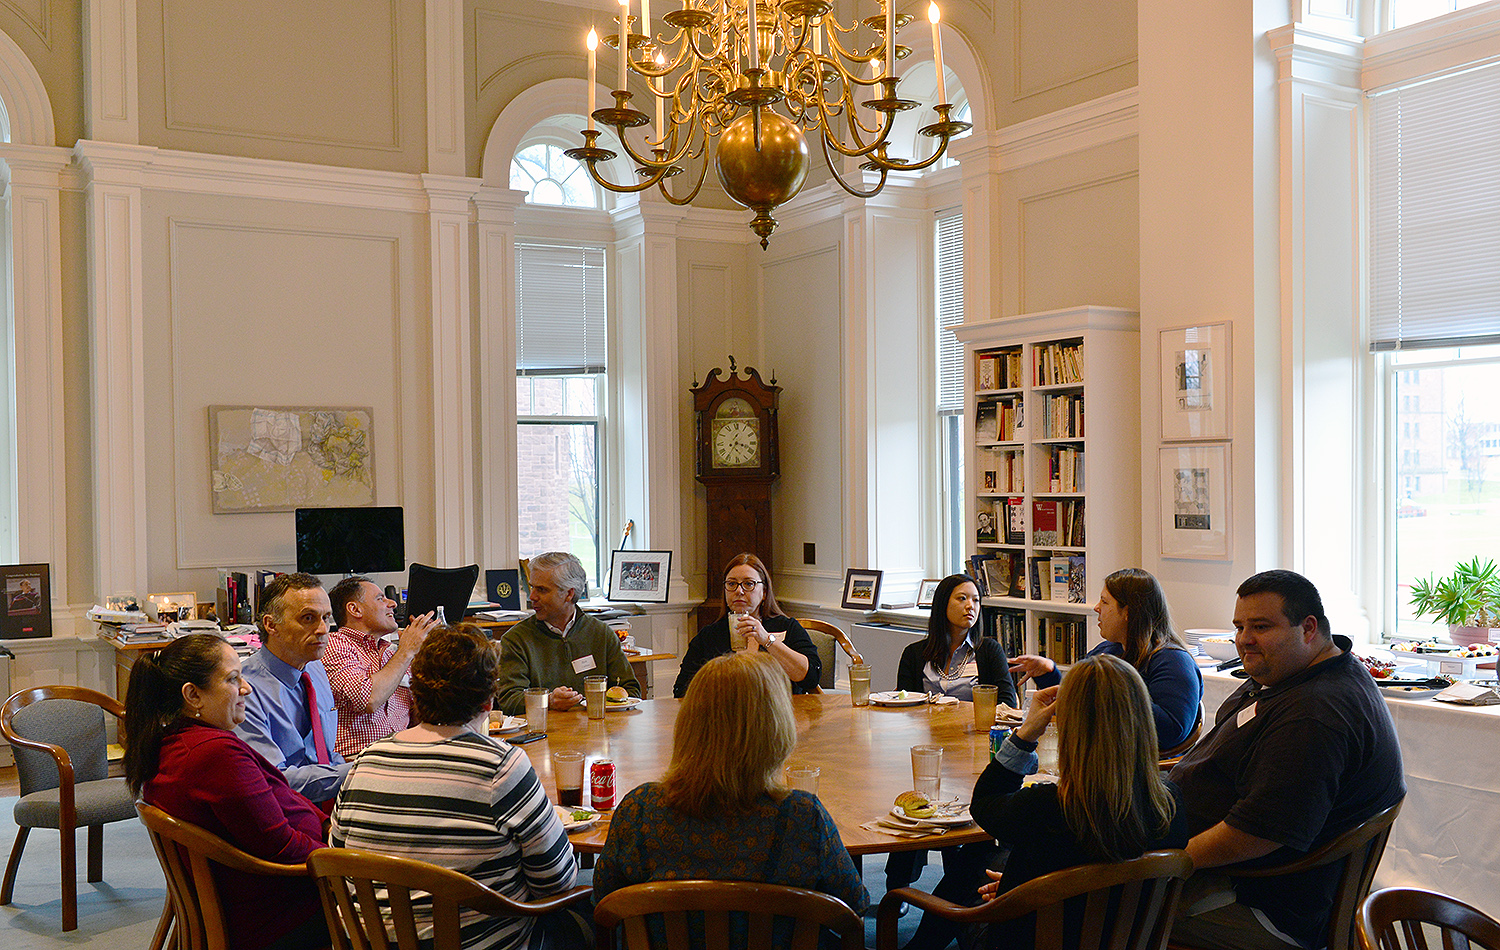 On April 6, Wesleyan President Michael Roth met with recent Cardinal Achievement Award recipients at a luncheon. President Roth hosted the event at his office in South College.